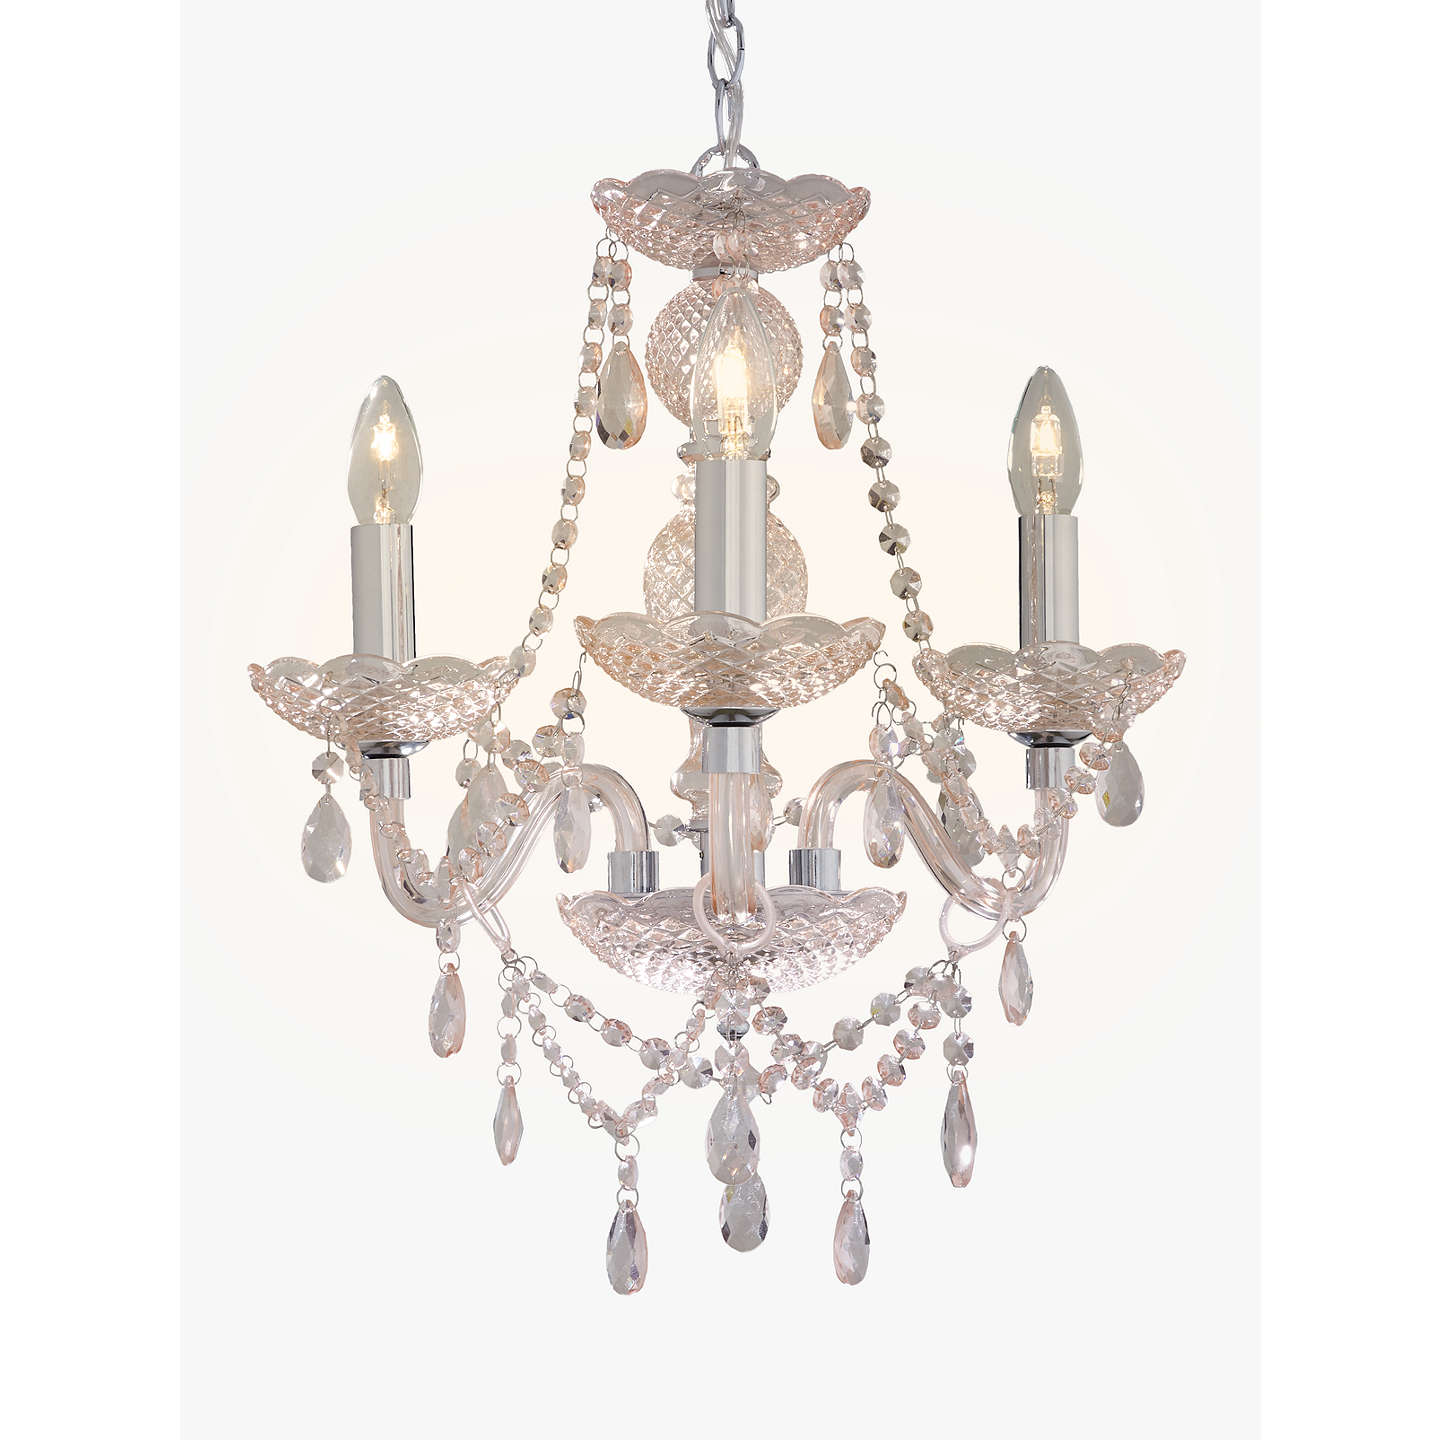 John lewis bethany chandelier 3 arm at john lewis buyjohn lewis bethany chandelier 3 arm pink online at johnlewis aloadofball Image collections